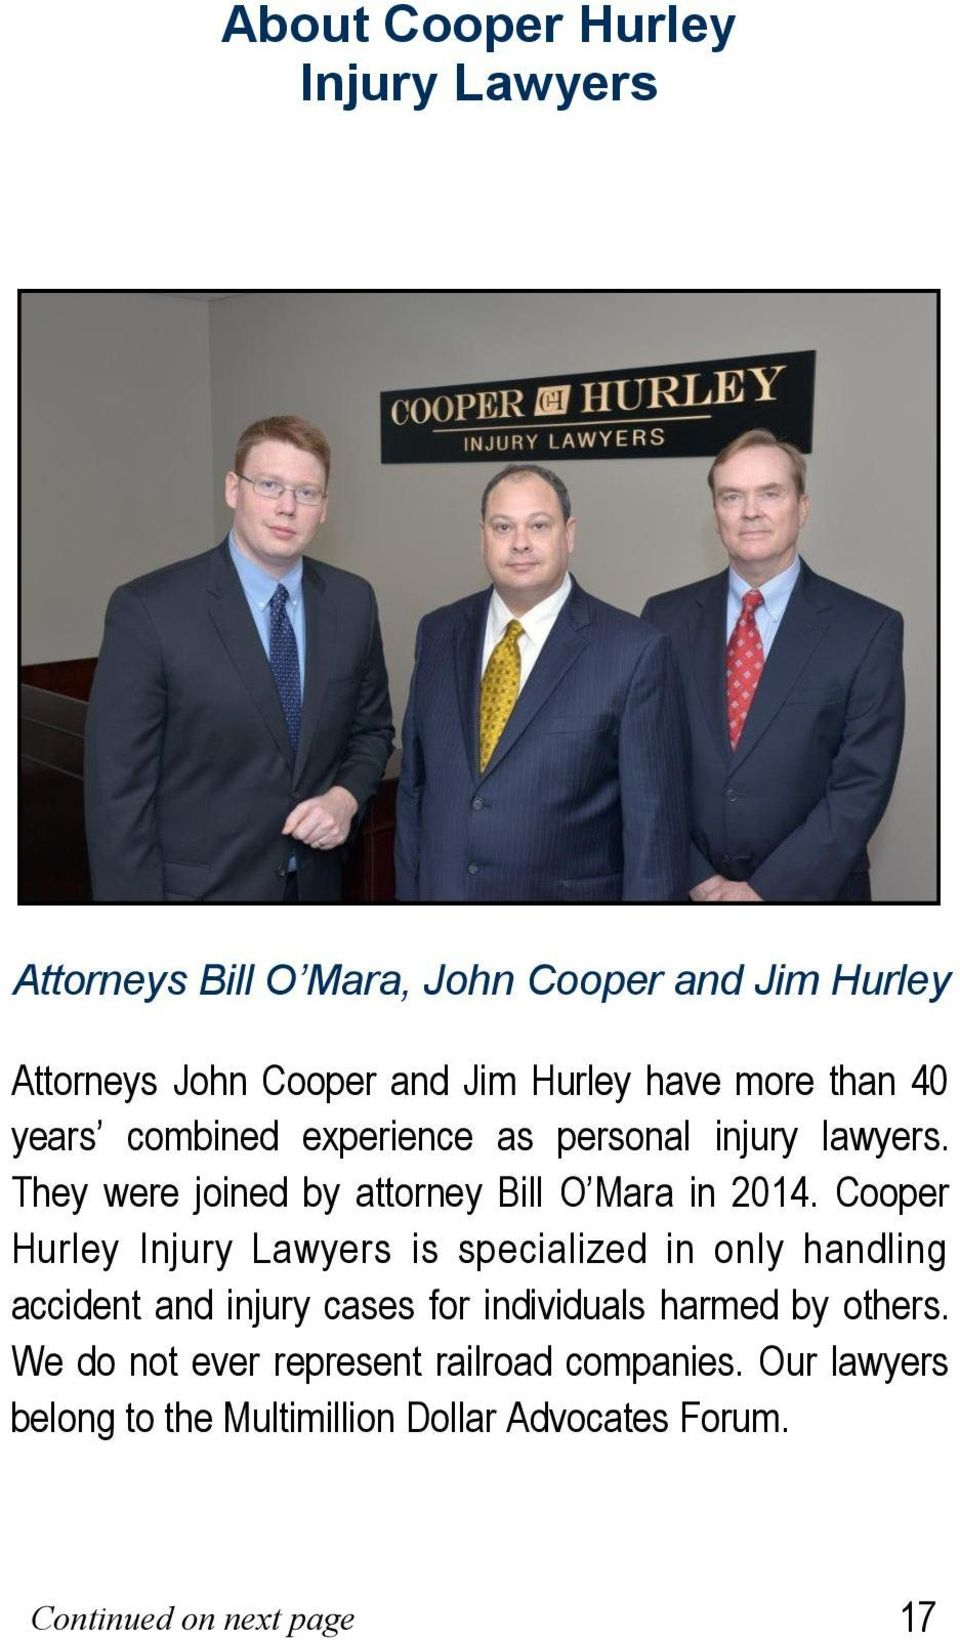 Cooper Hurley Injury Lawyers is specialized in only handling accident and injury cases for individuals harmed by others.